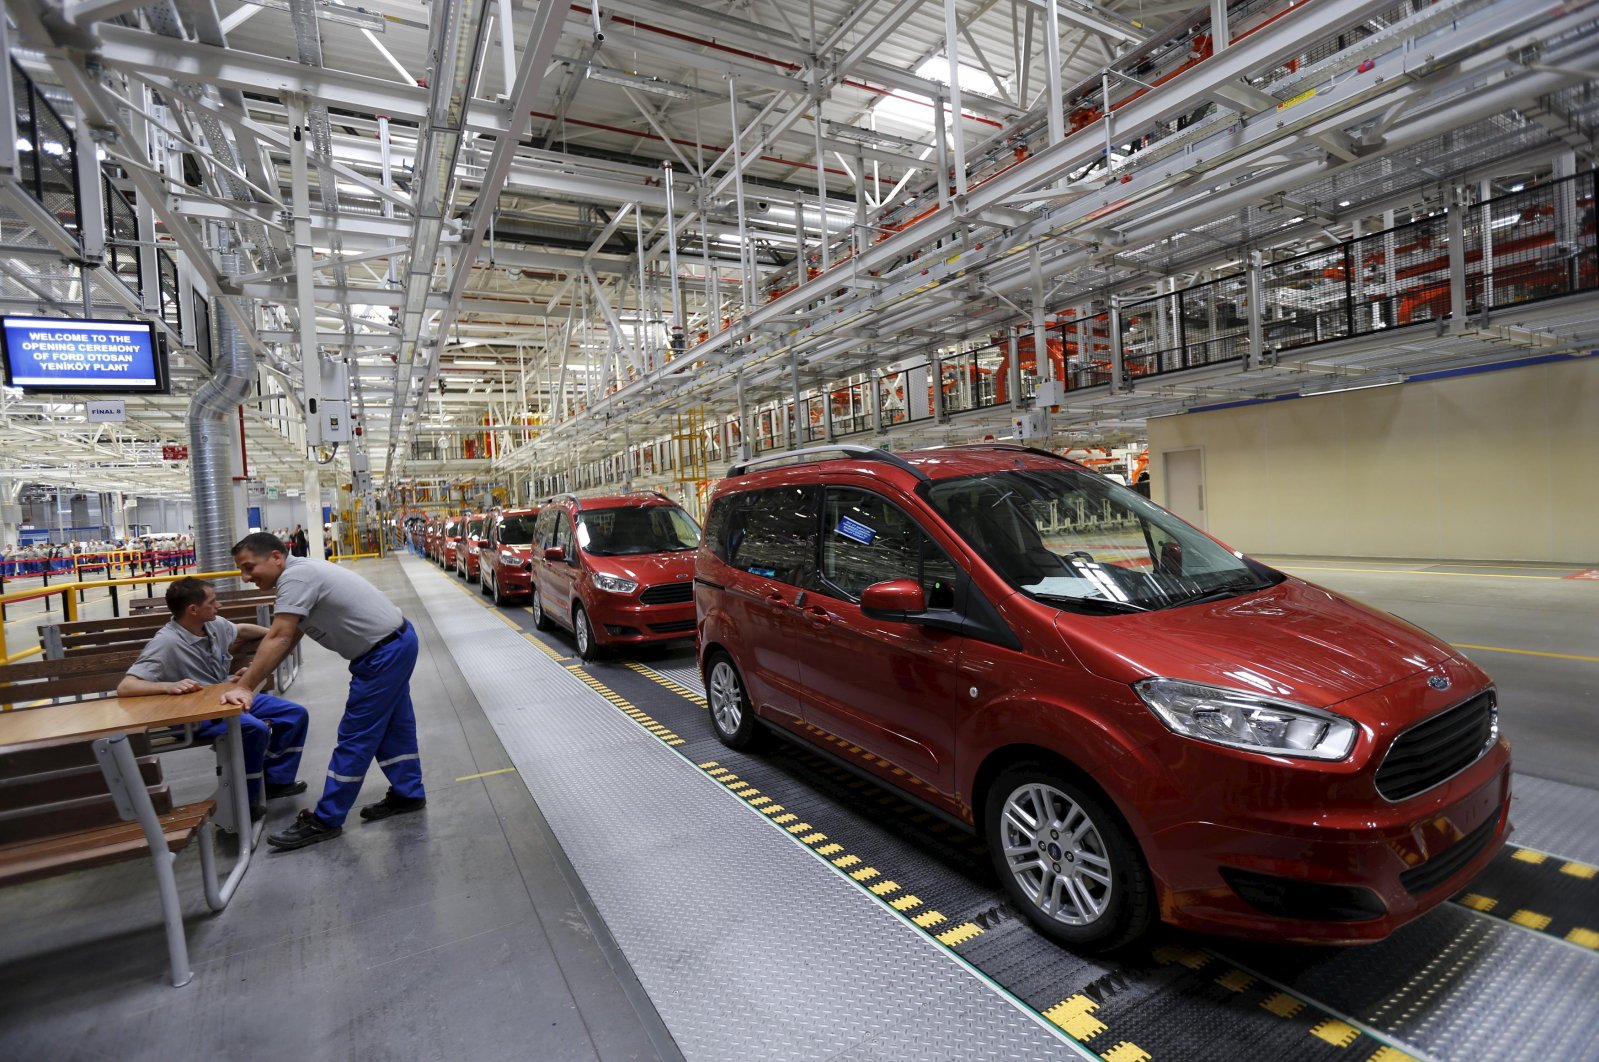 Ford Tourneo Courier light commercial vehicles are pictured at the Ford Otosan Yeniköy car plant in northwestern Kocaeli province, Turkey, May 22, 2014.